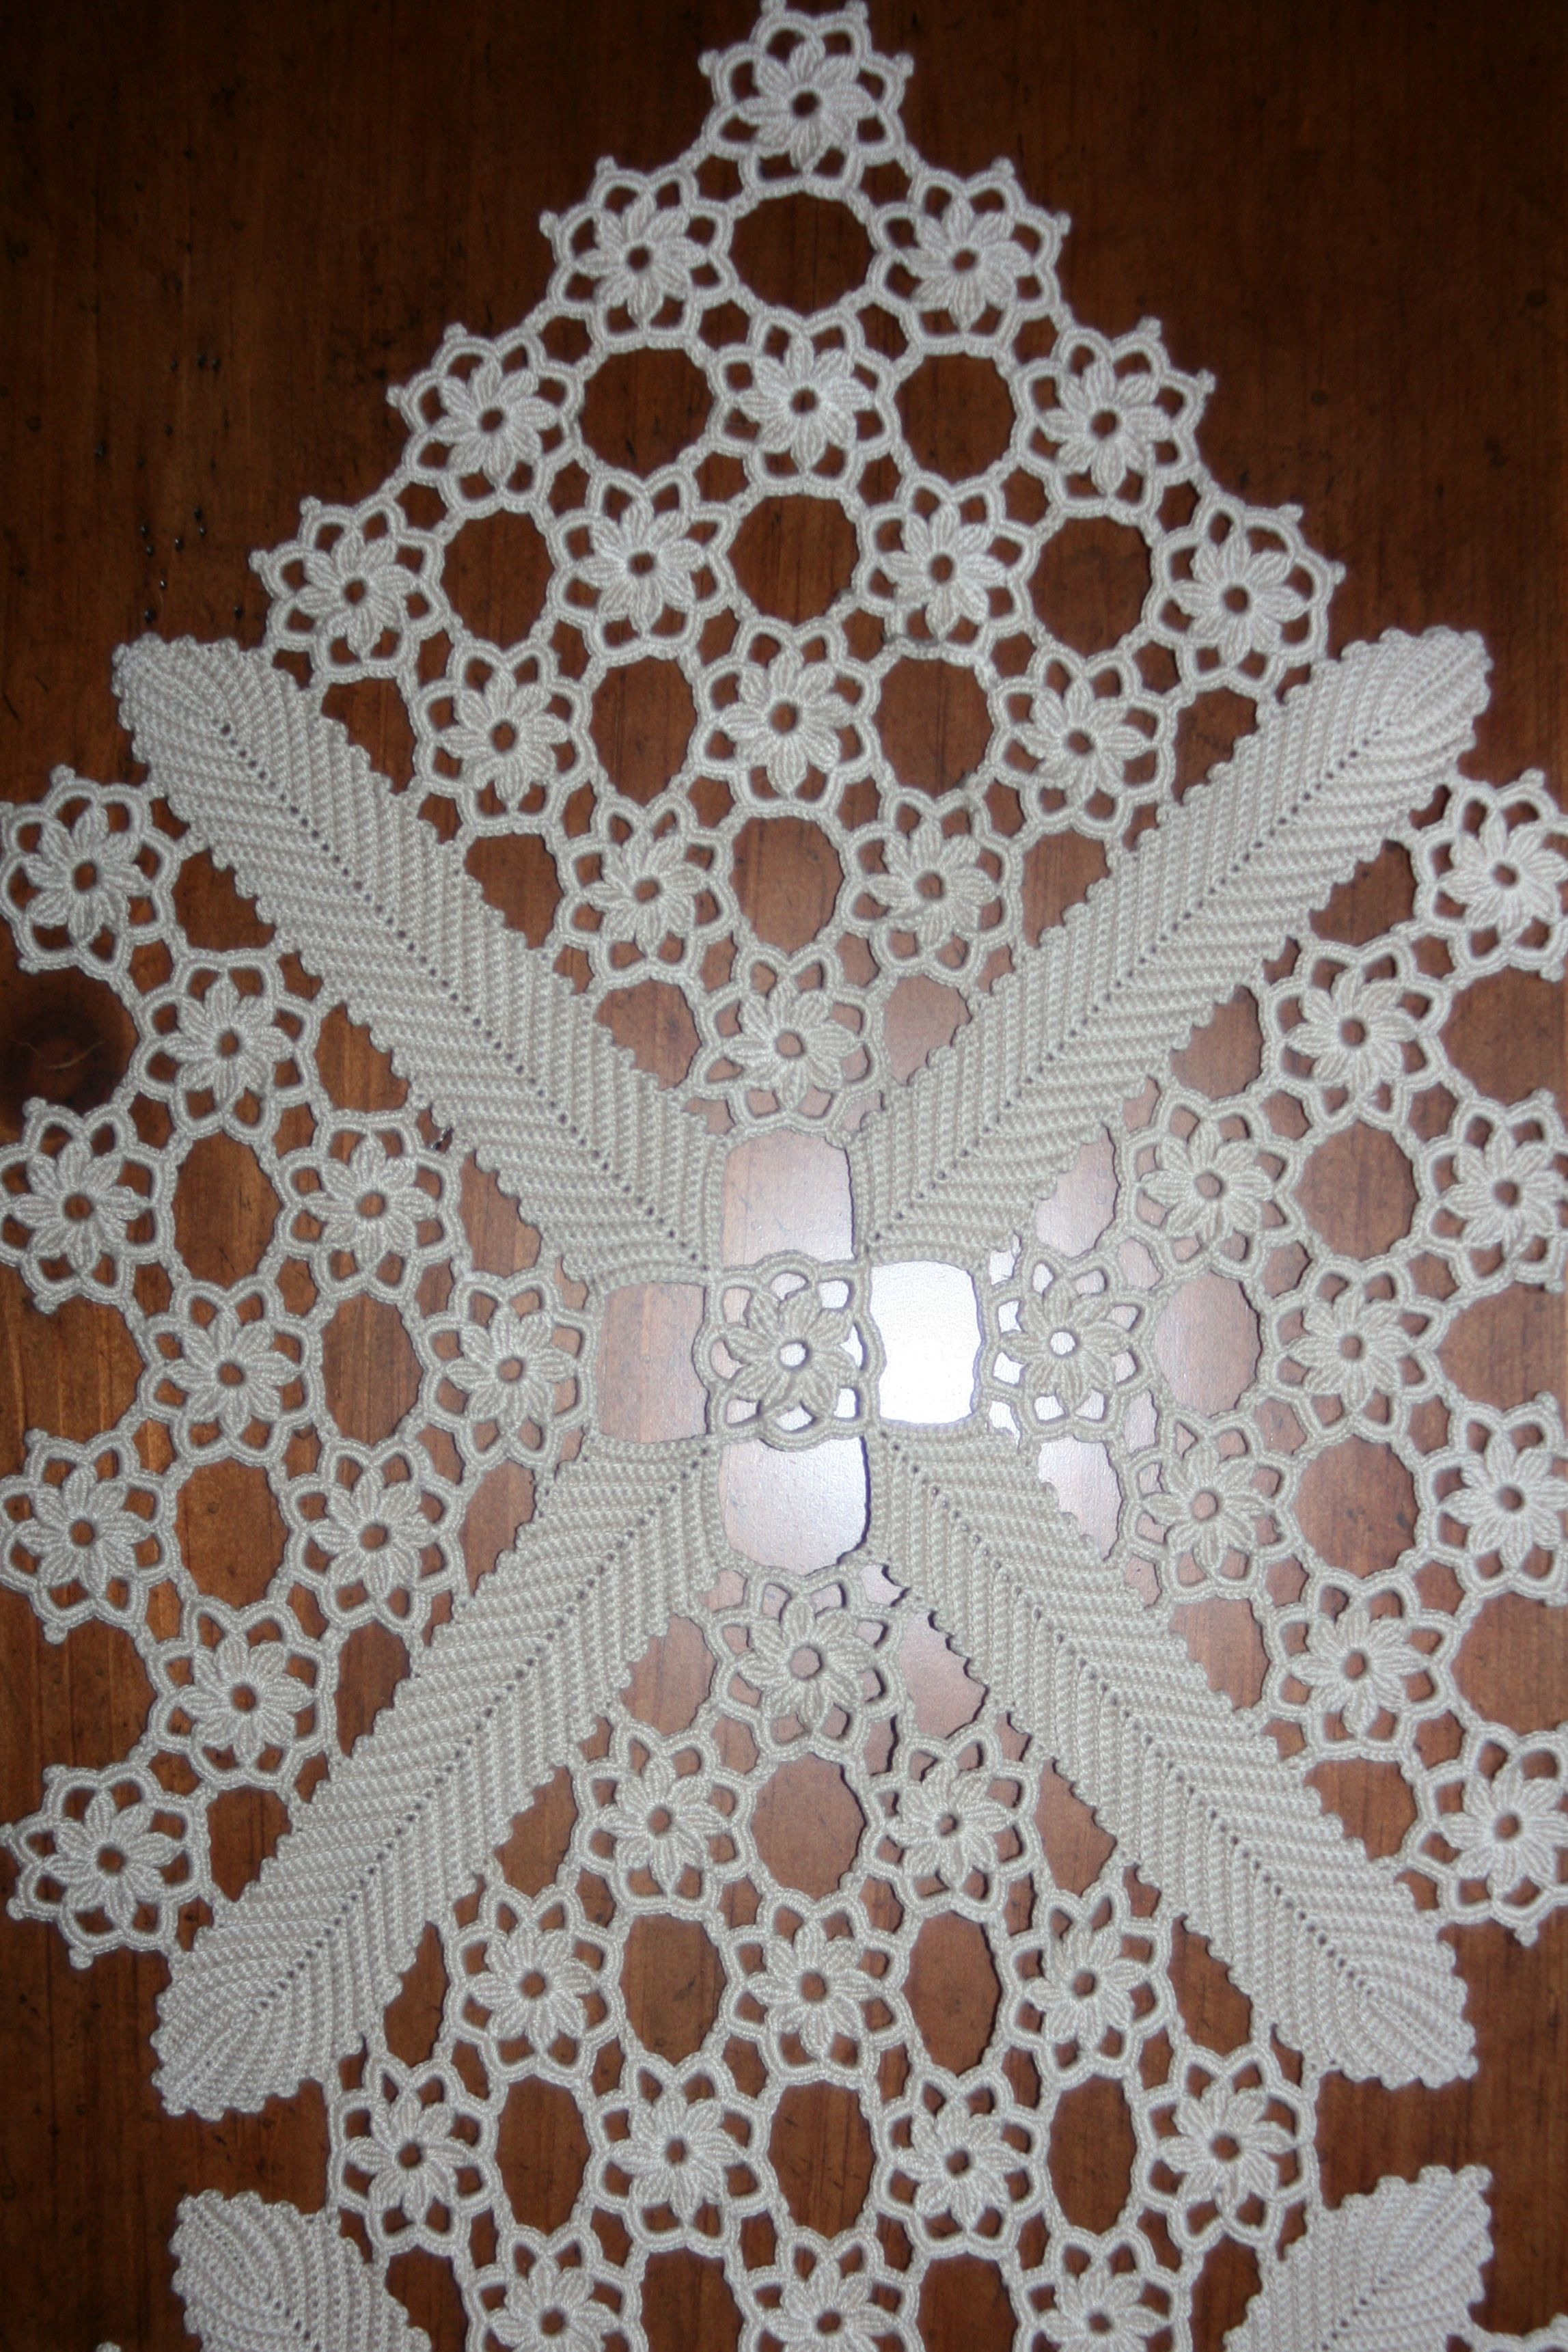 Crochet Table Runner : crochet - table runner CENTROS DE MESA Y MANTELES . Pinterest